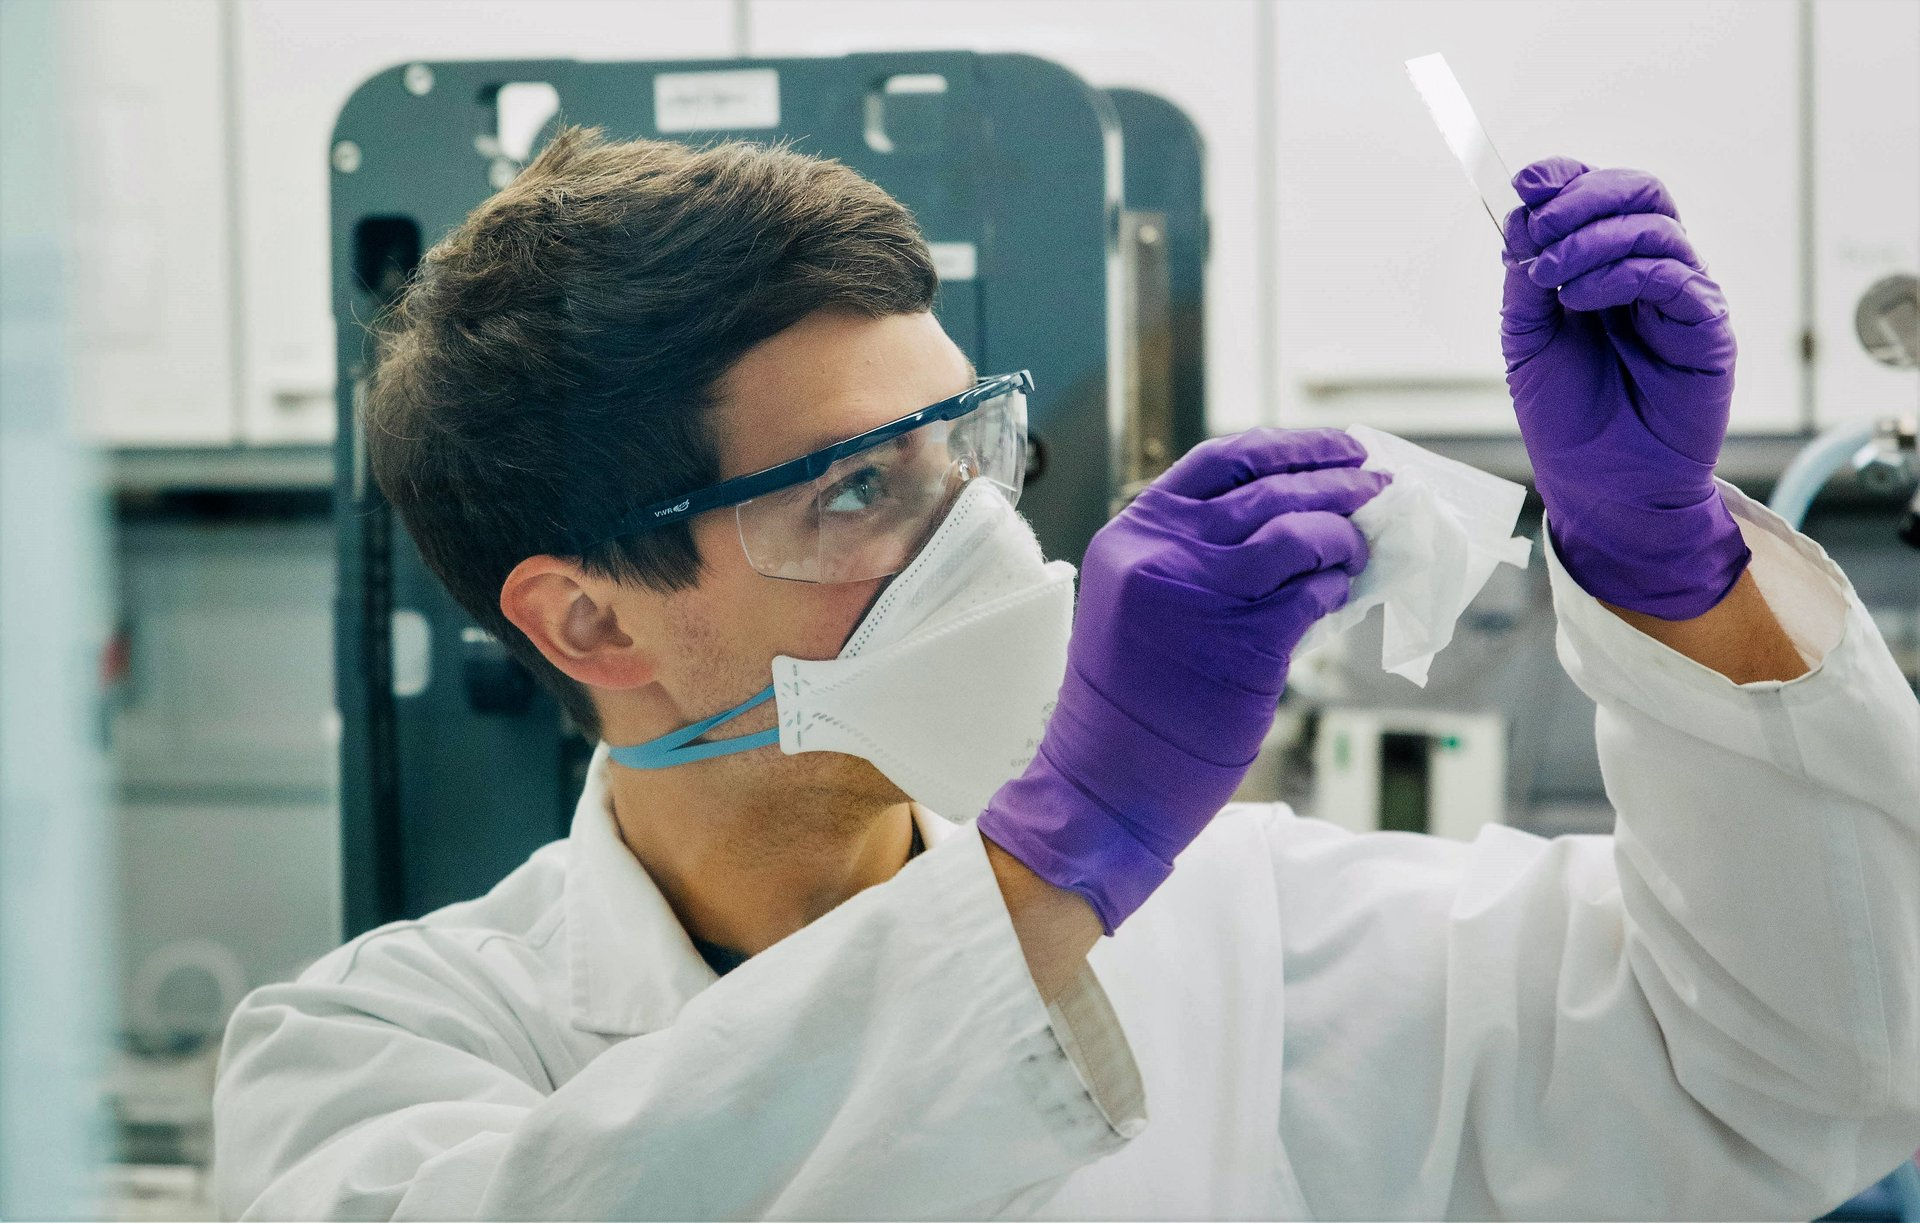 Working in Laboratory